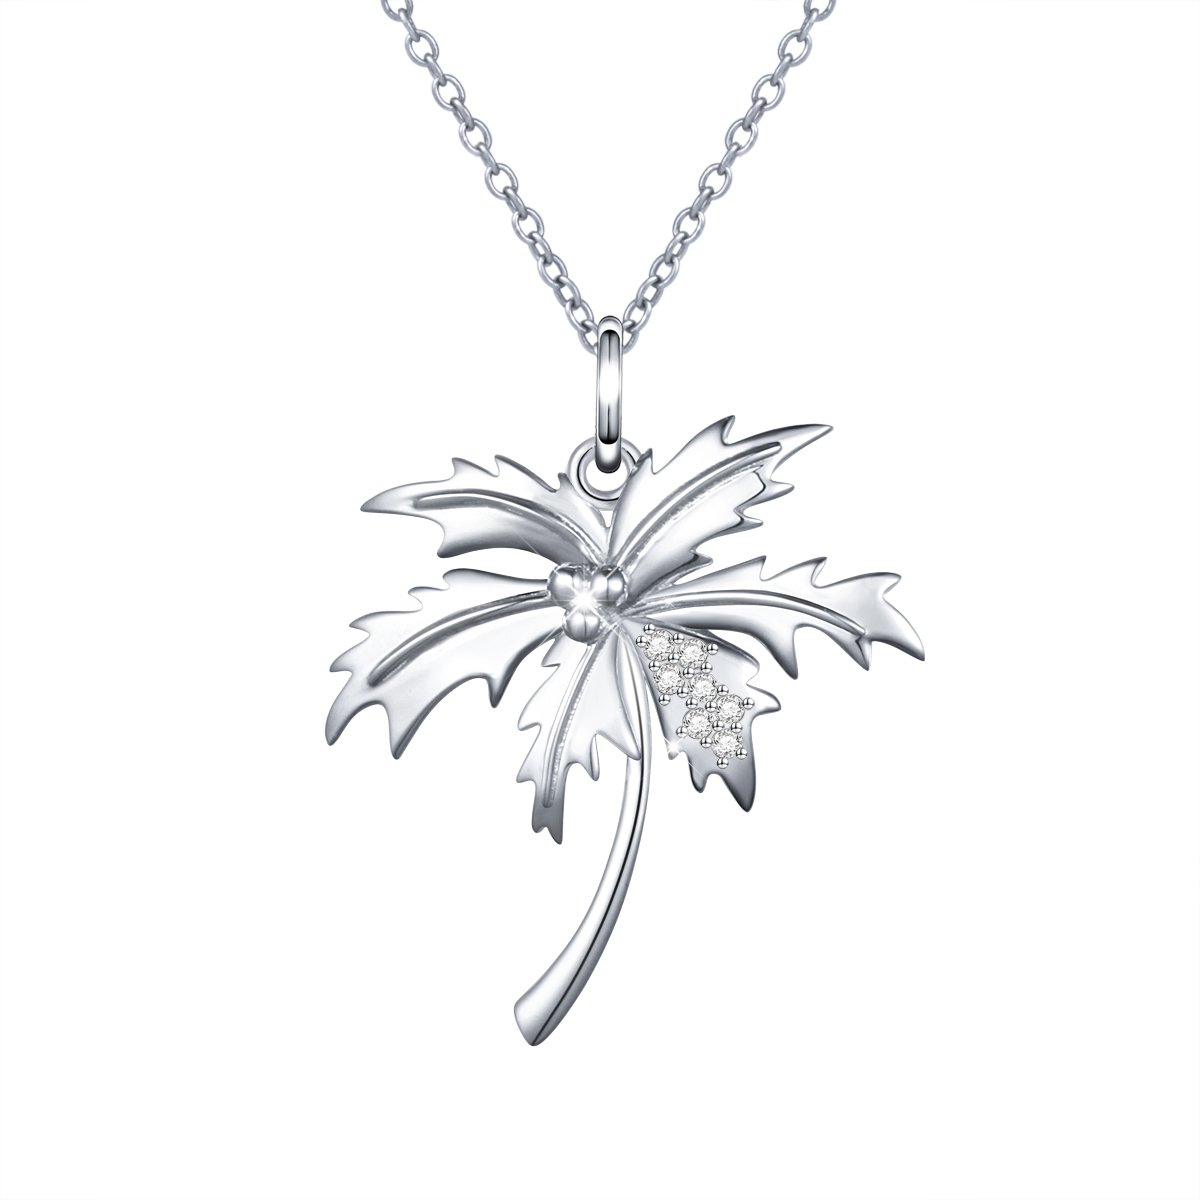 Yearace 925 Sterling Silver Palm Tree Necklace Simple Coconut Tree Pendant Charm Women, 18 inch Rolo Chain